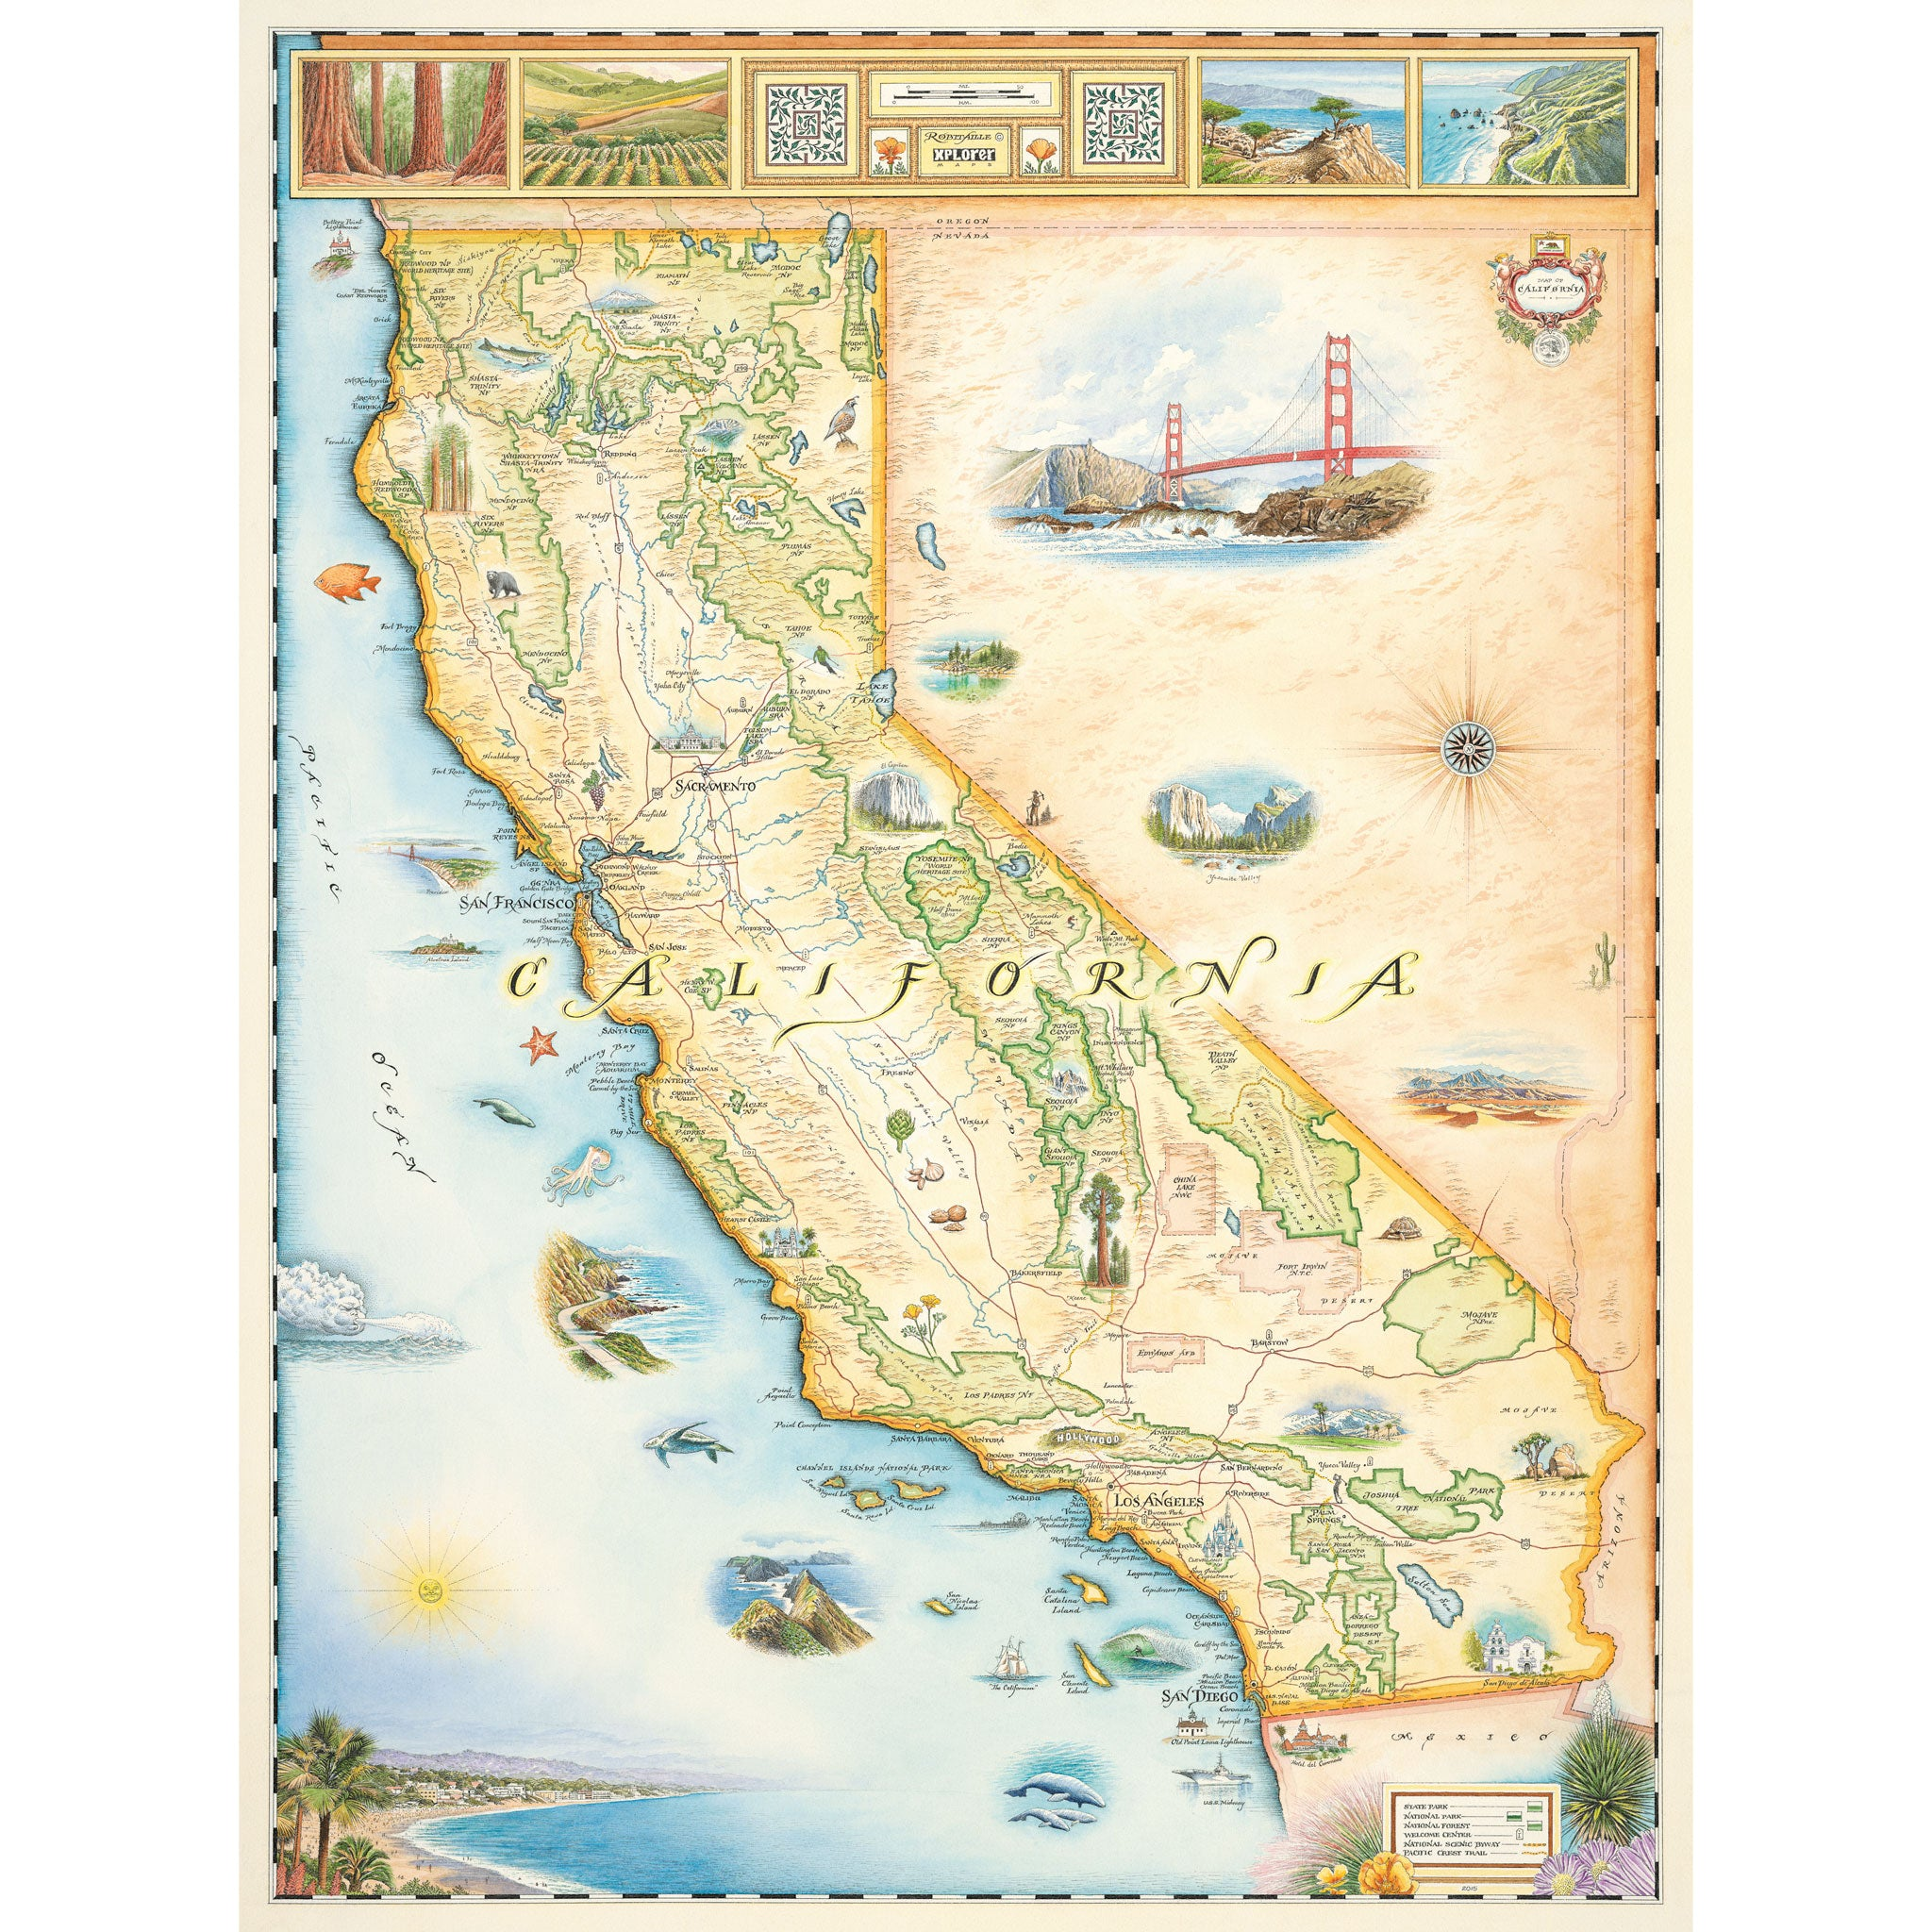 California State Map - Xplorer Maps on